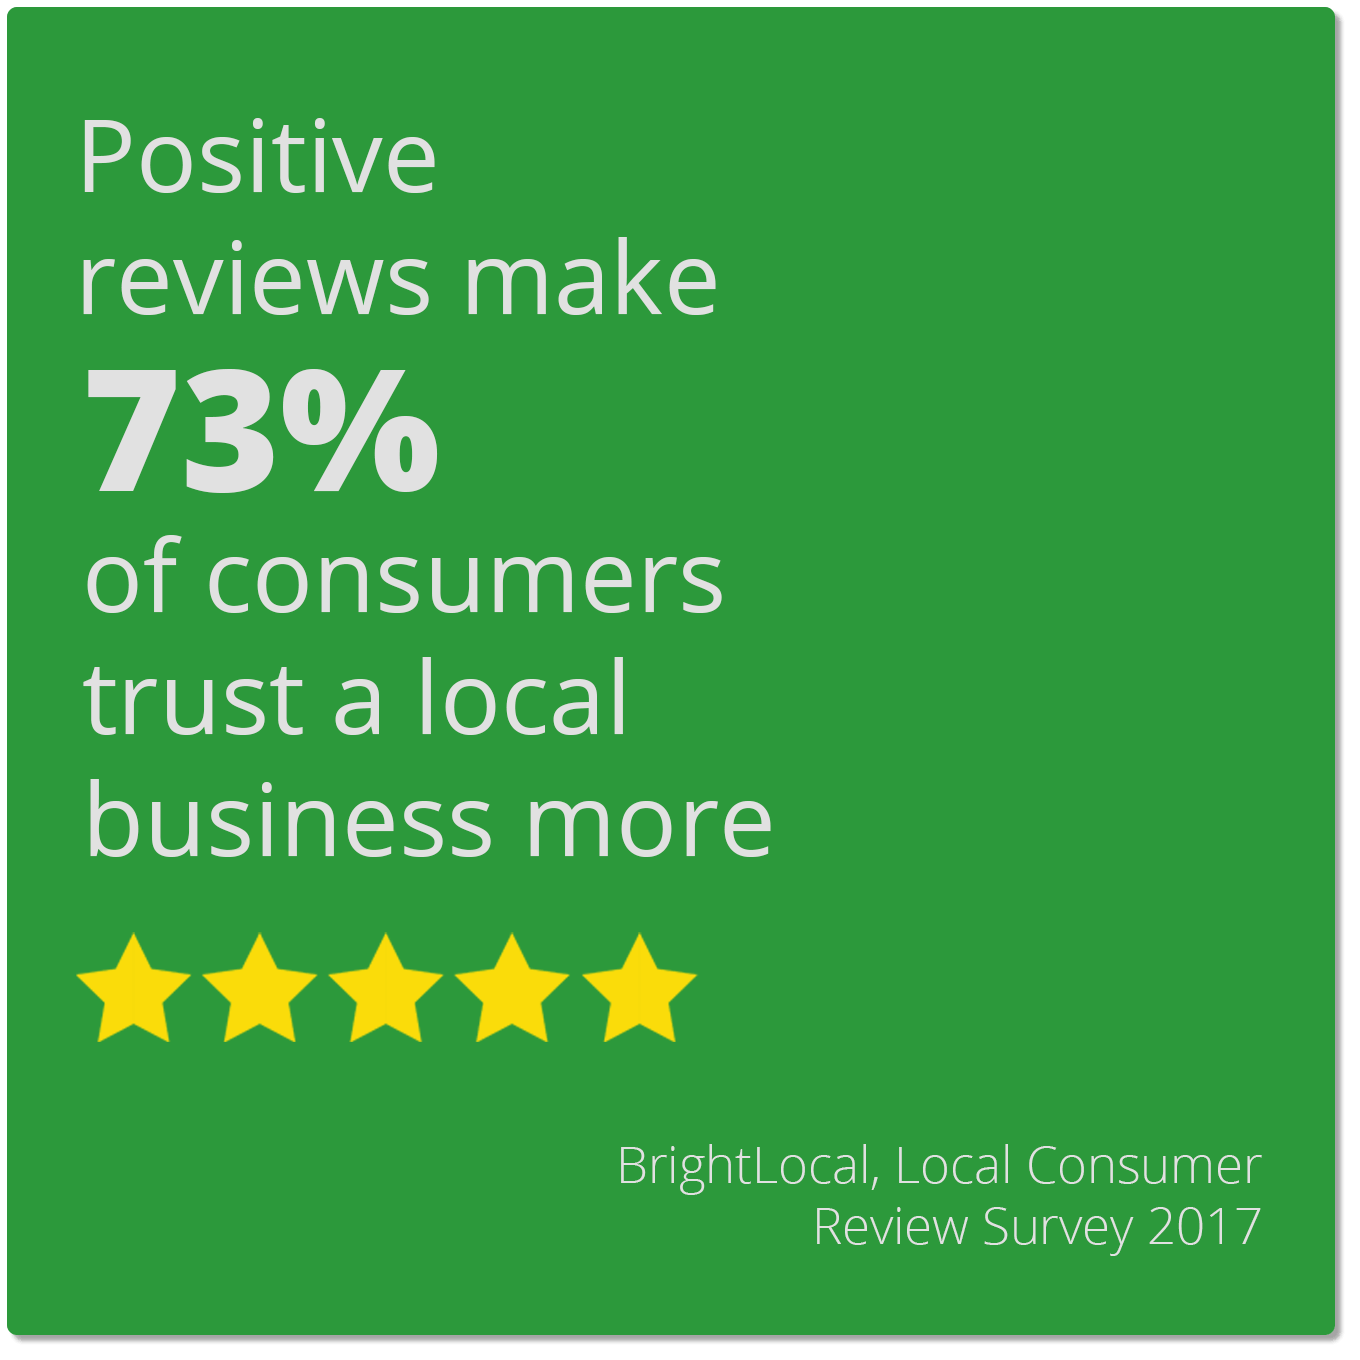 Positive reviews make 73% of consumers trust a local business more